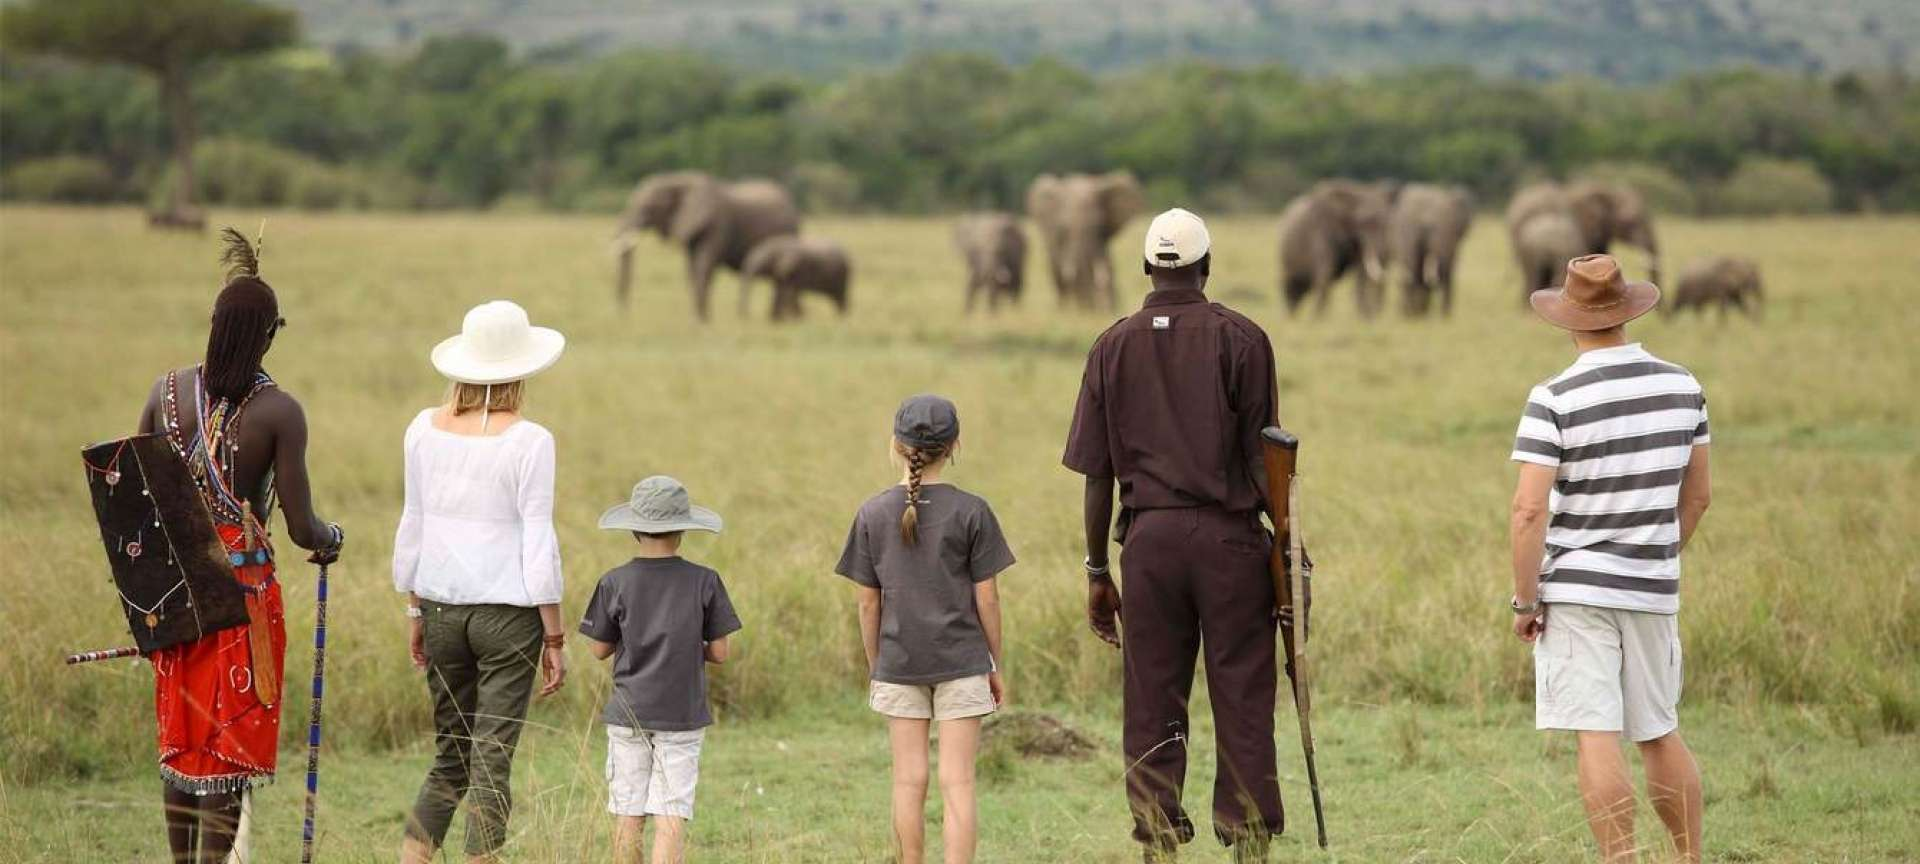 Walking safaris in Kenya - Africa Wildlife Safaris